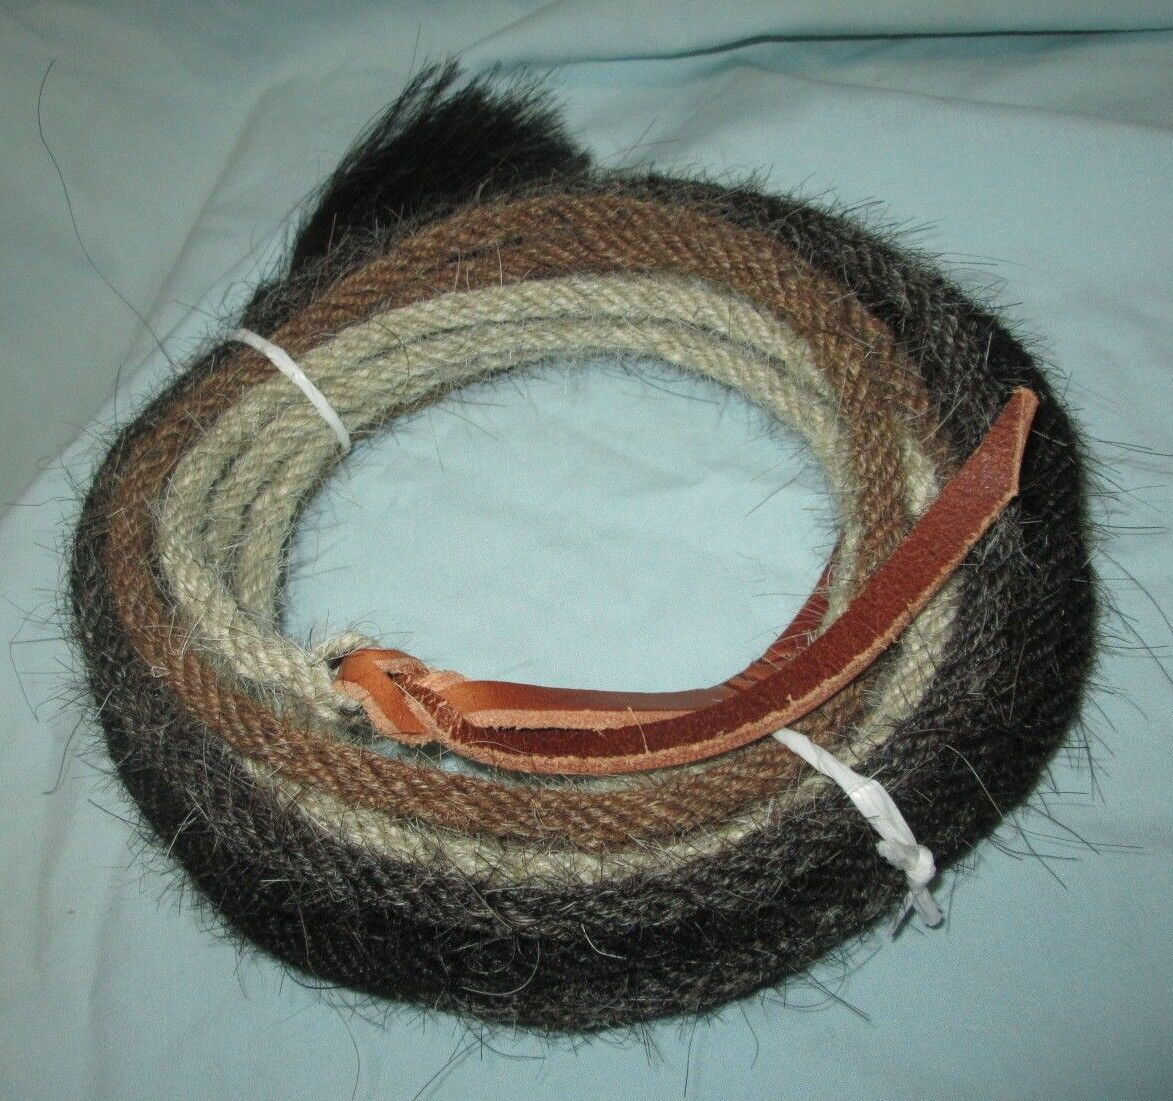 Mane Horse Hair Mecate 22 ft long  1  4  dia.  Pattern V -- Changing colors  ultra-low prices